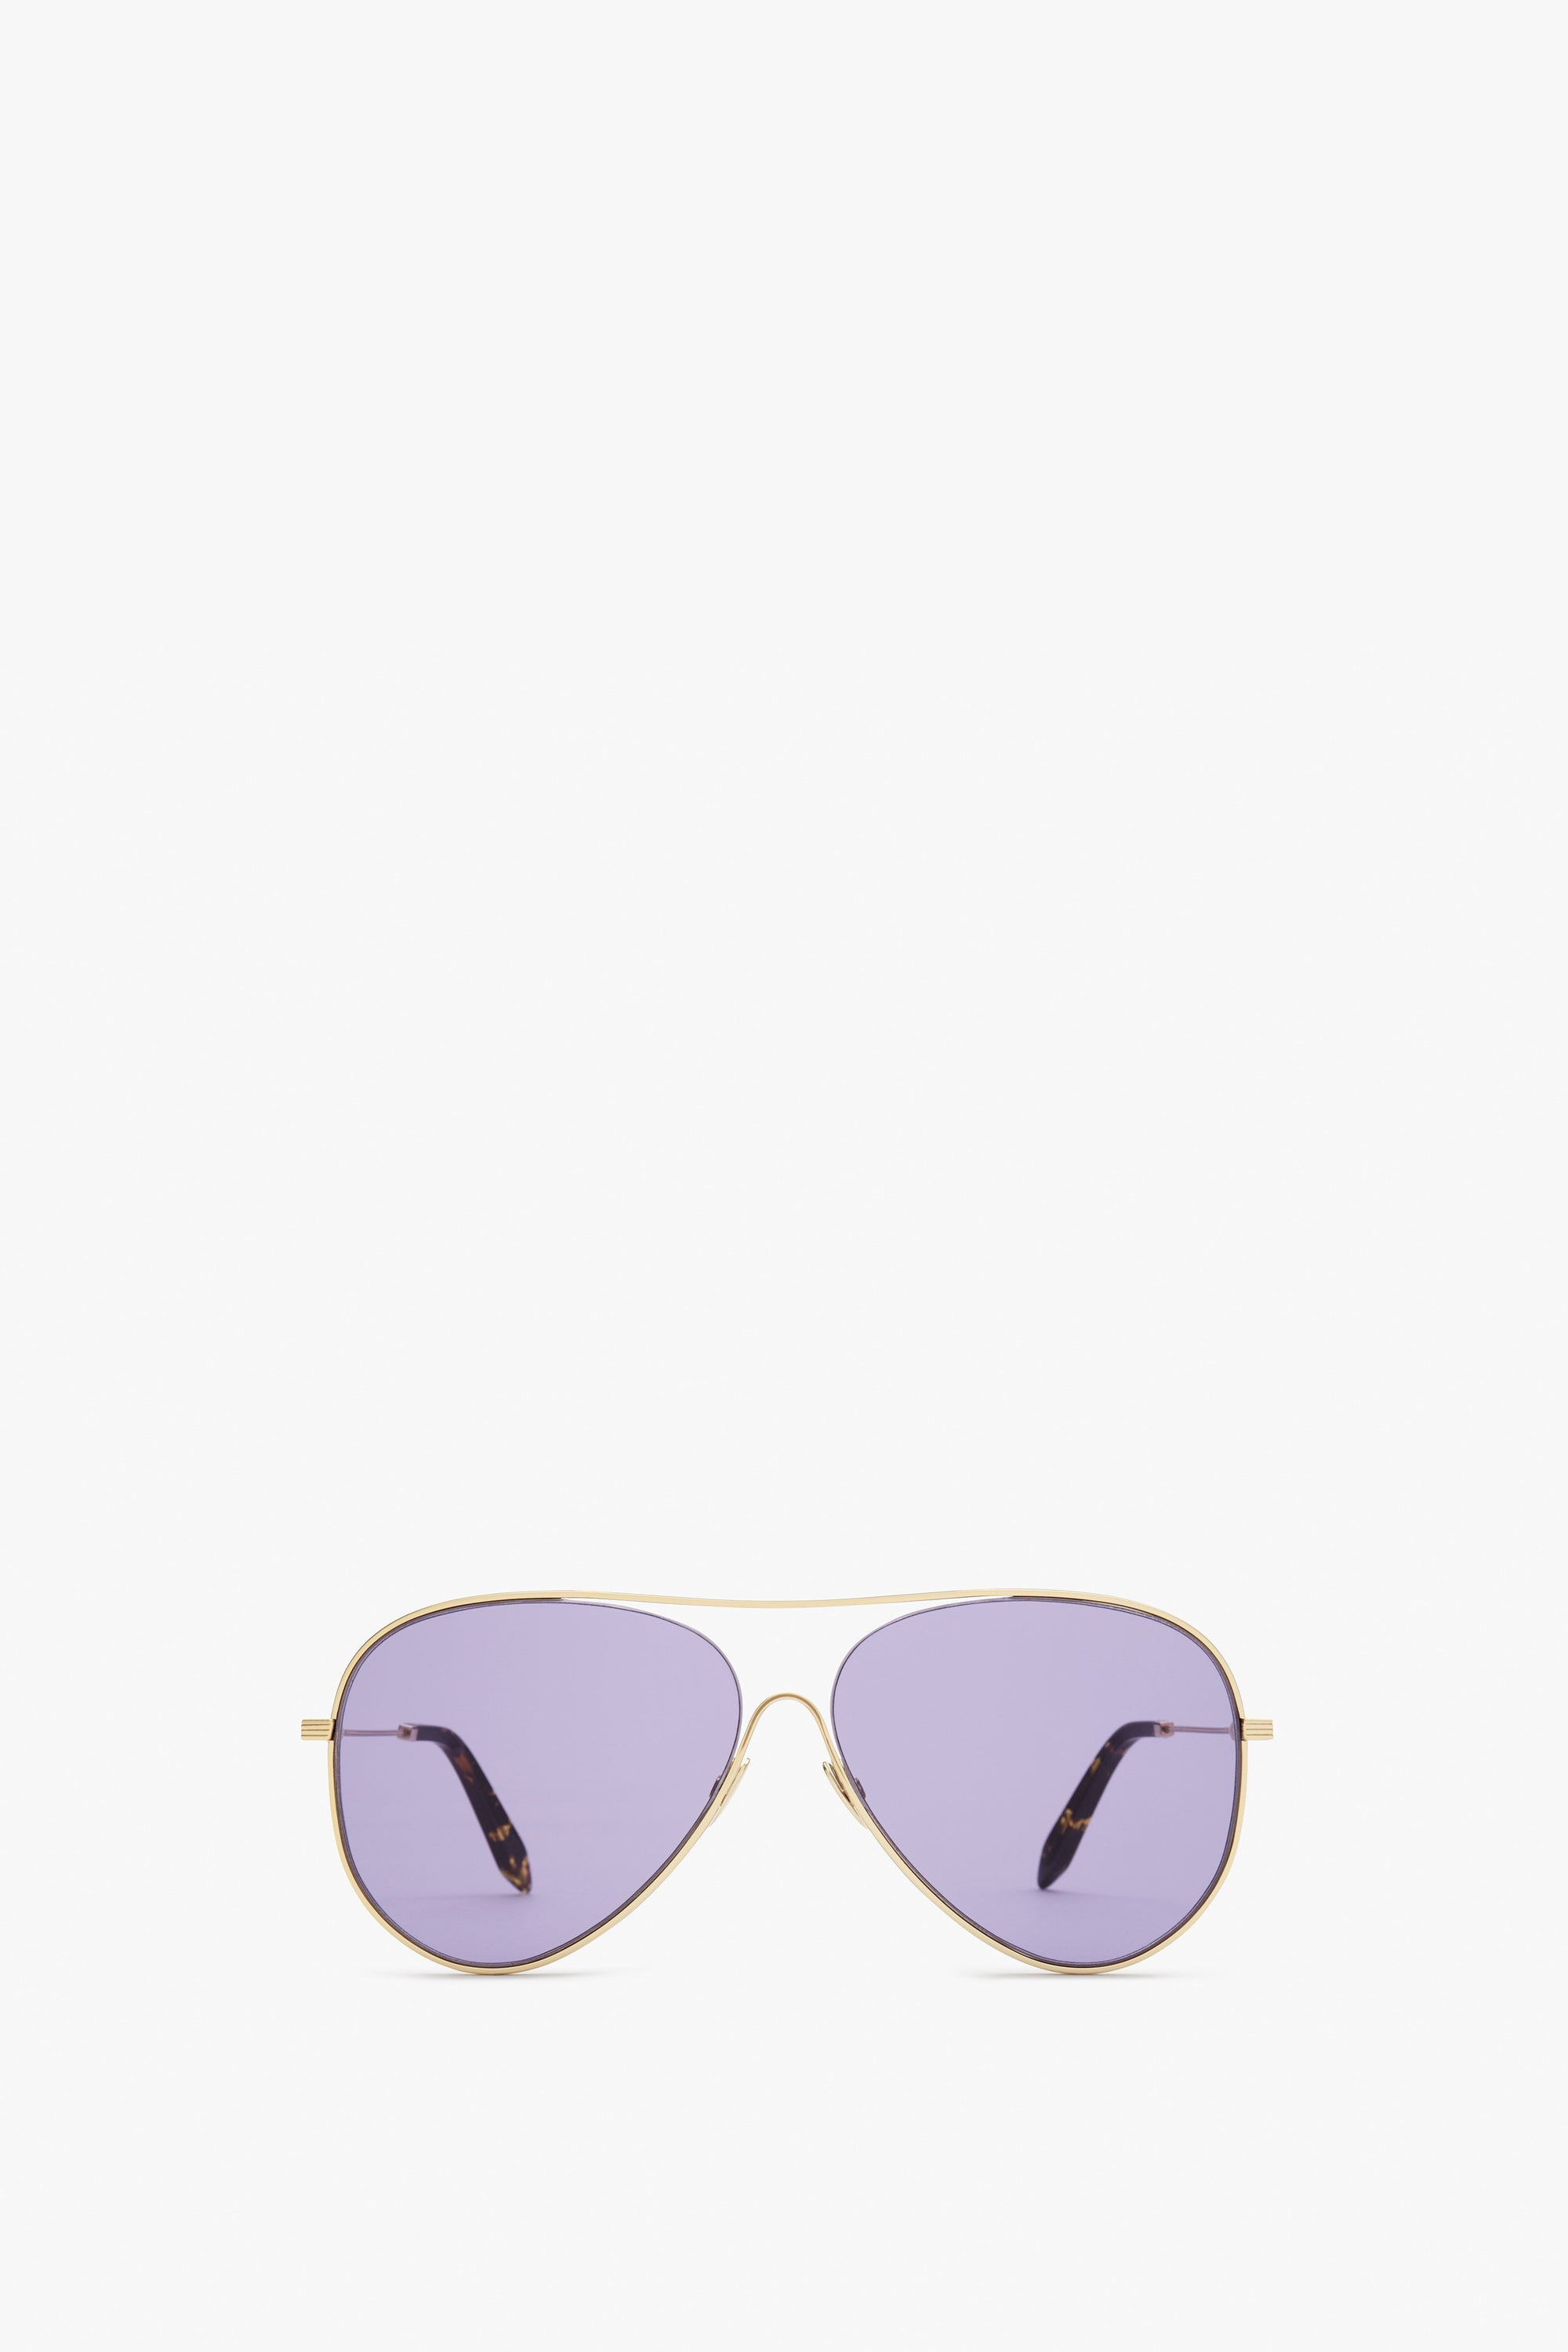 Loop Aviator in Bleu Rose